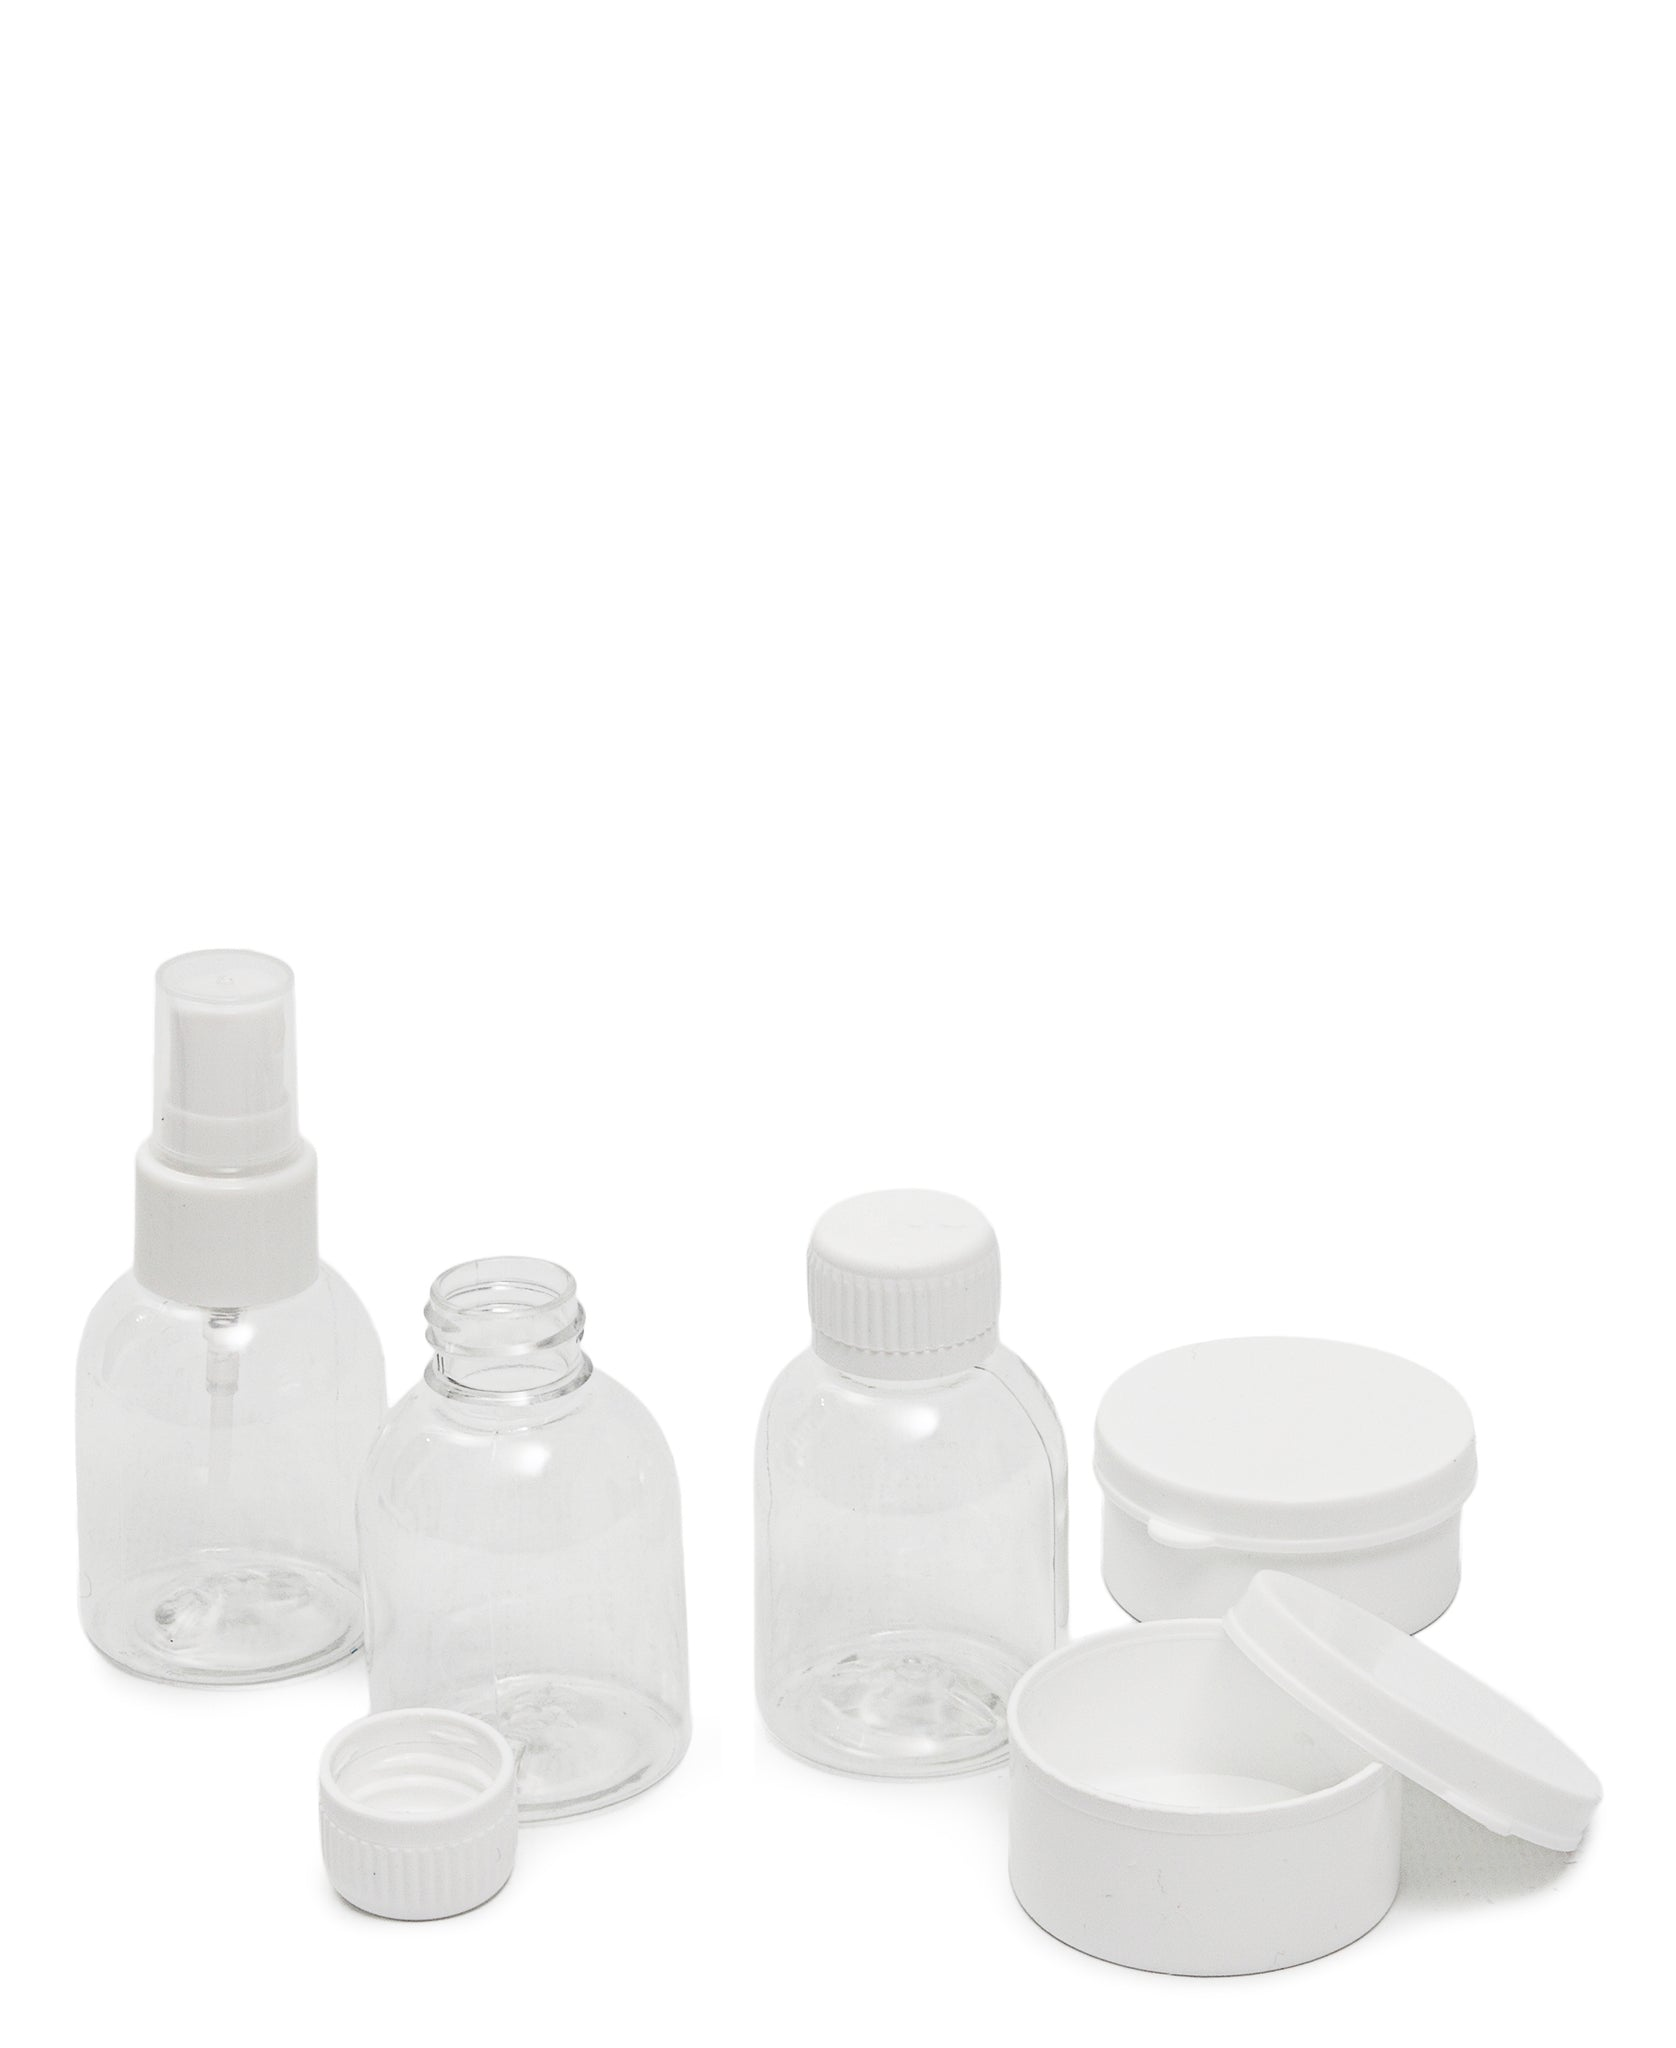 Set Of 5 Travel Bottles - White